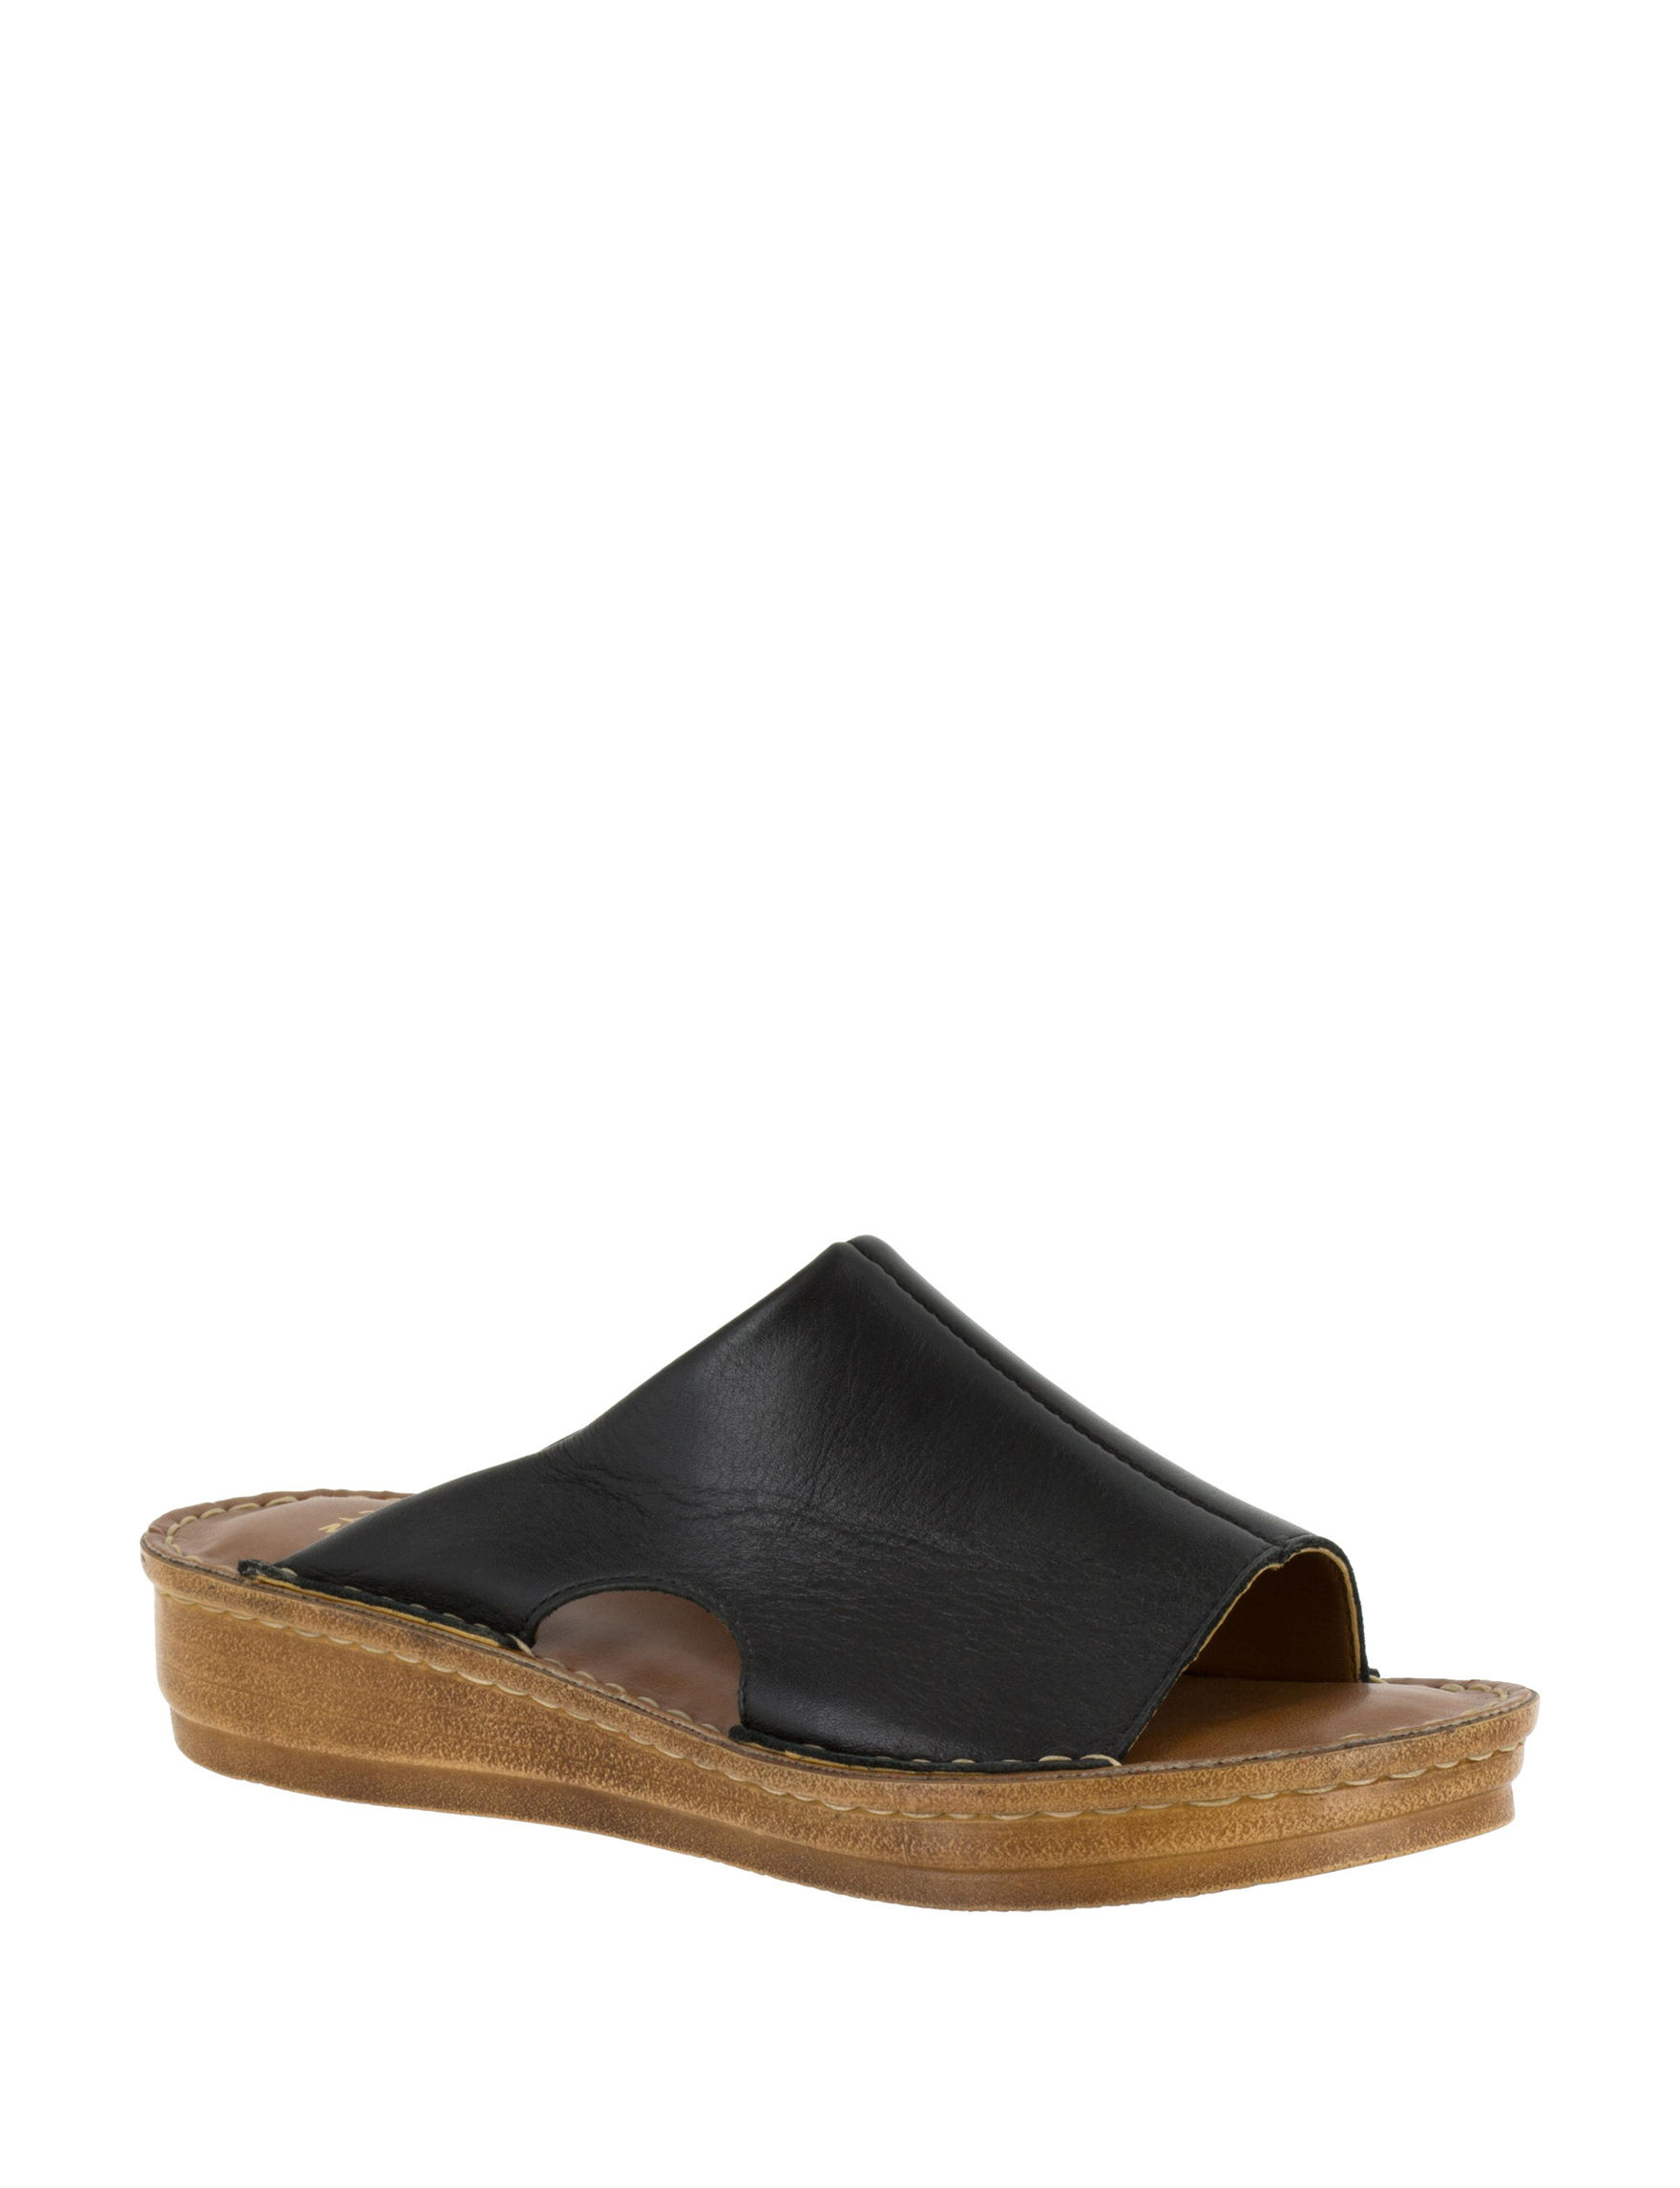 Bella Vita Black Slide Sandals Wedge Sandals